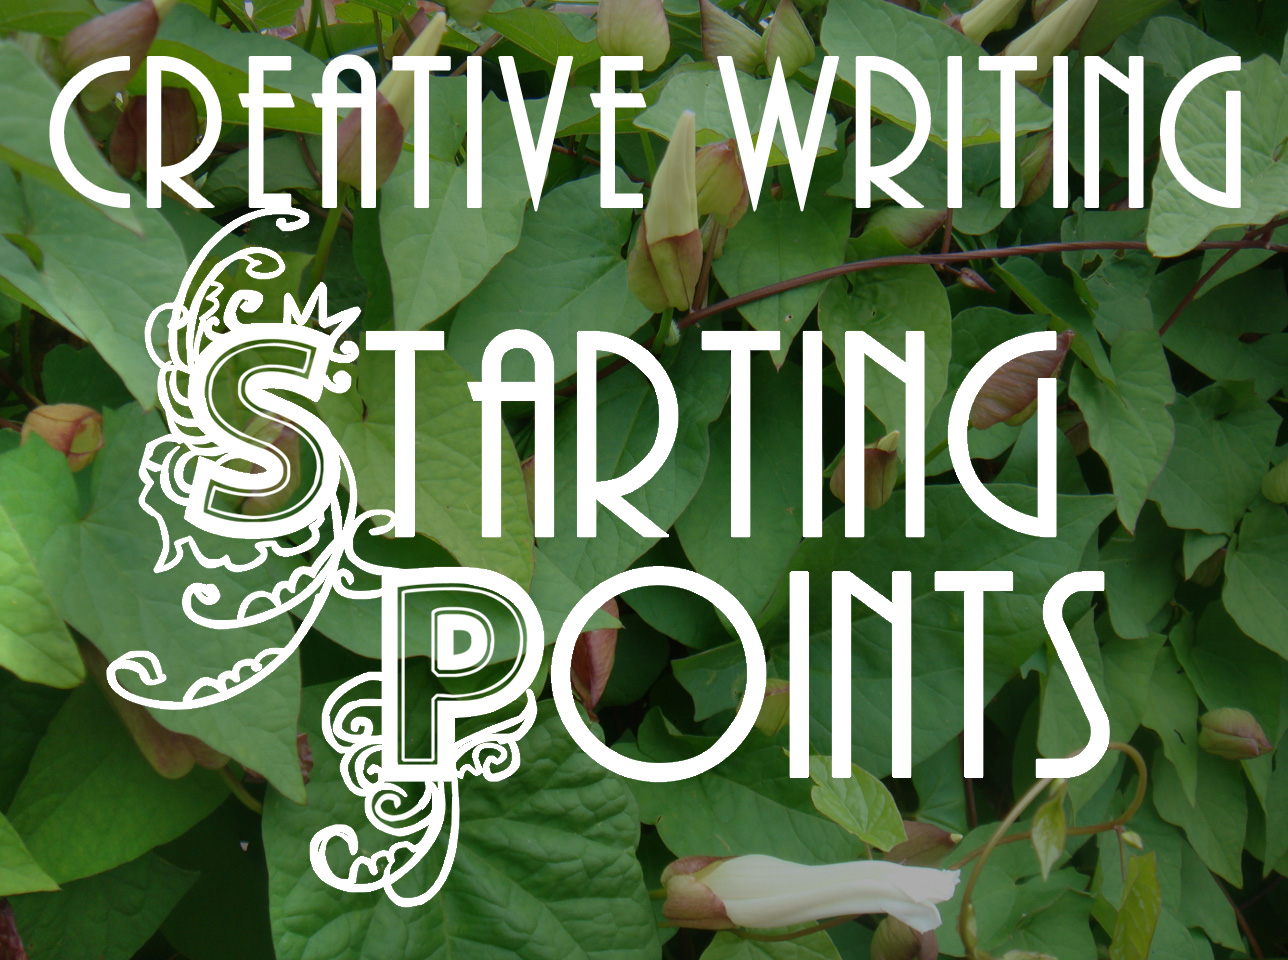 creative writing courses Free online creative writing course, covering releasing your creativity, how to write a short story, writing from a point of view, bringing your writing to life.